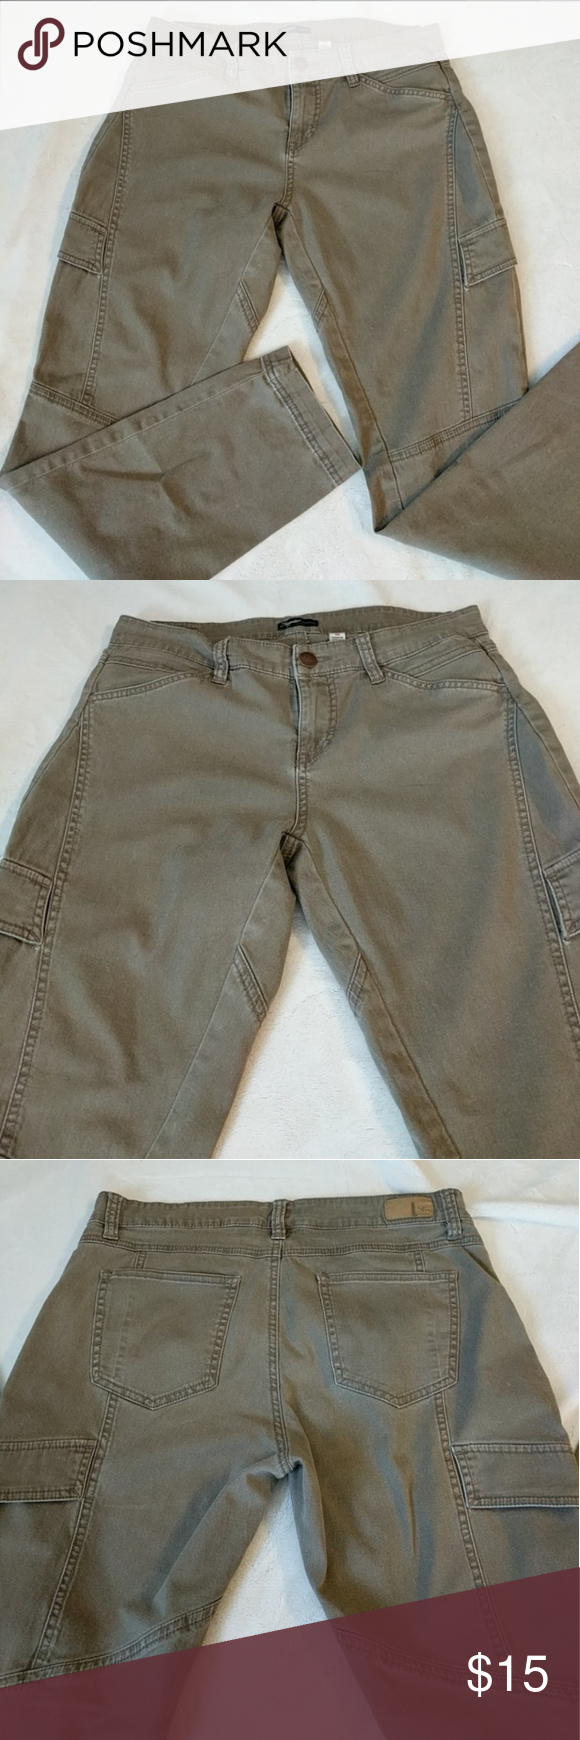 Army Green Cargo Pants Size 10.  These cargo pants are perfect for that casual cool vibe!  Cuff up the bottom hem and pair with your favorite boots for a great look!  Features side cargo pockets and a diagonal inseam for a slimming look!  Small stress holes on both legs where pocket flap is attached to pant ( see last pic) otherwise great condition!  Flat lay measurements Inseam: 28.5